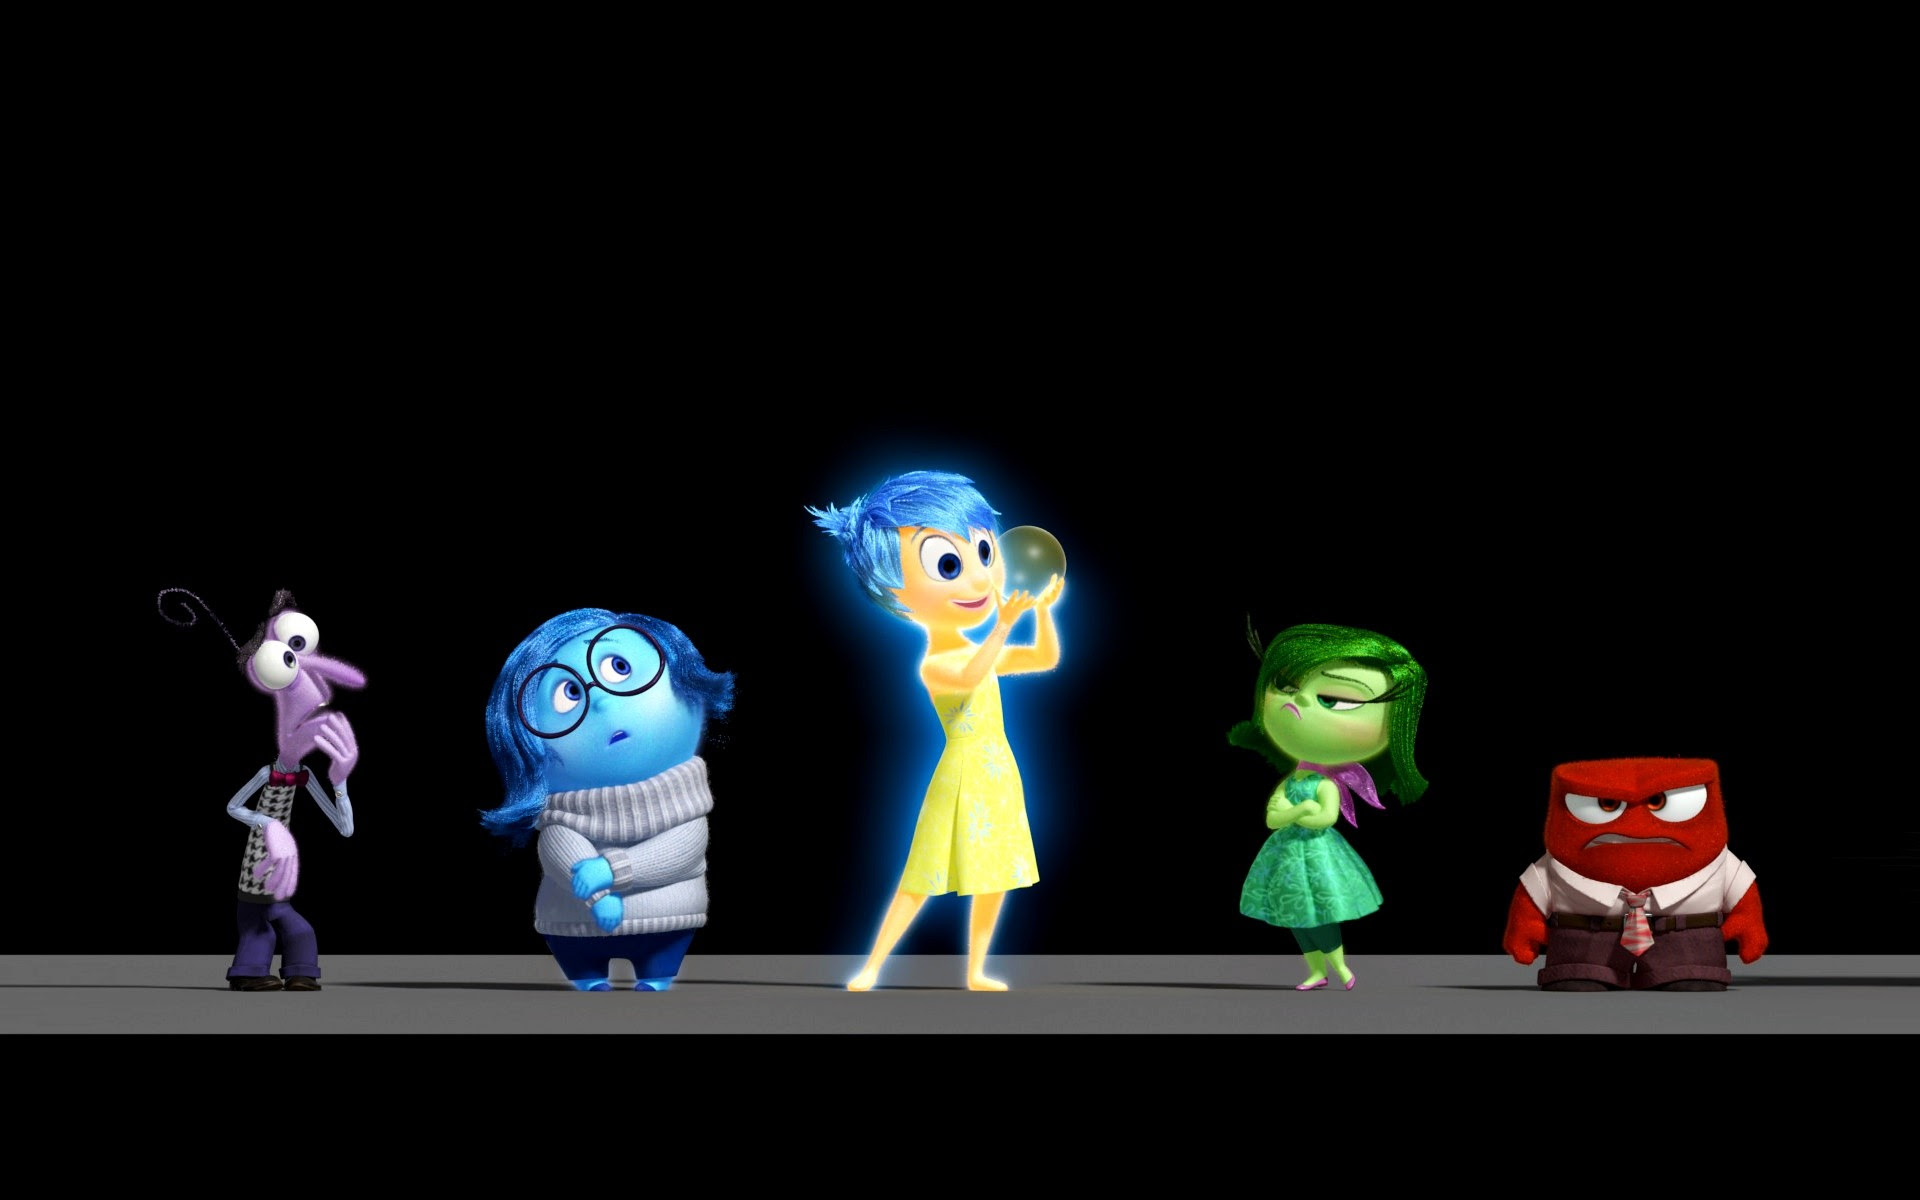 Inside Out Wallpapers High Quality | Download Free